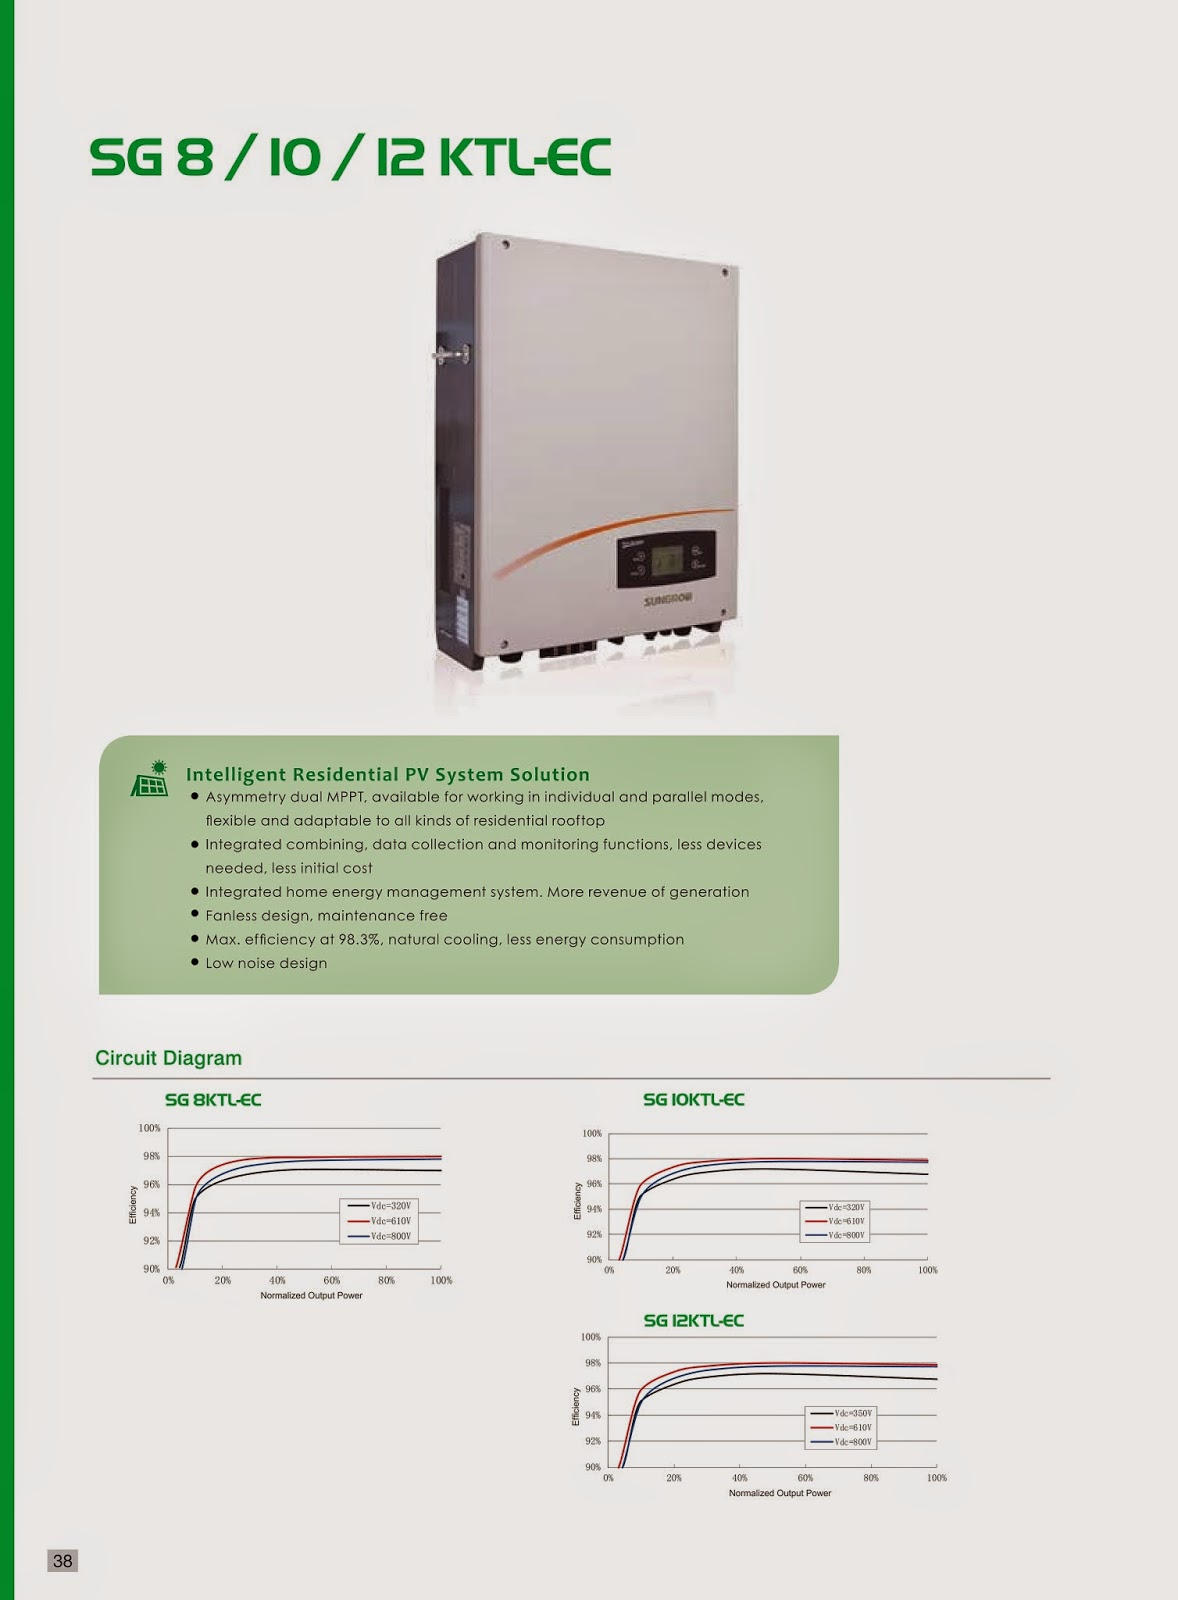 Bos Asia Sdn Bhd Sungrow New Series Of 3 Phase Inverter Circuit Diagram